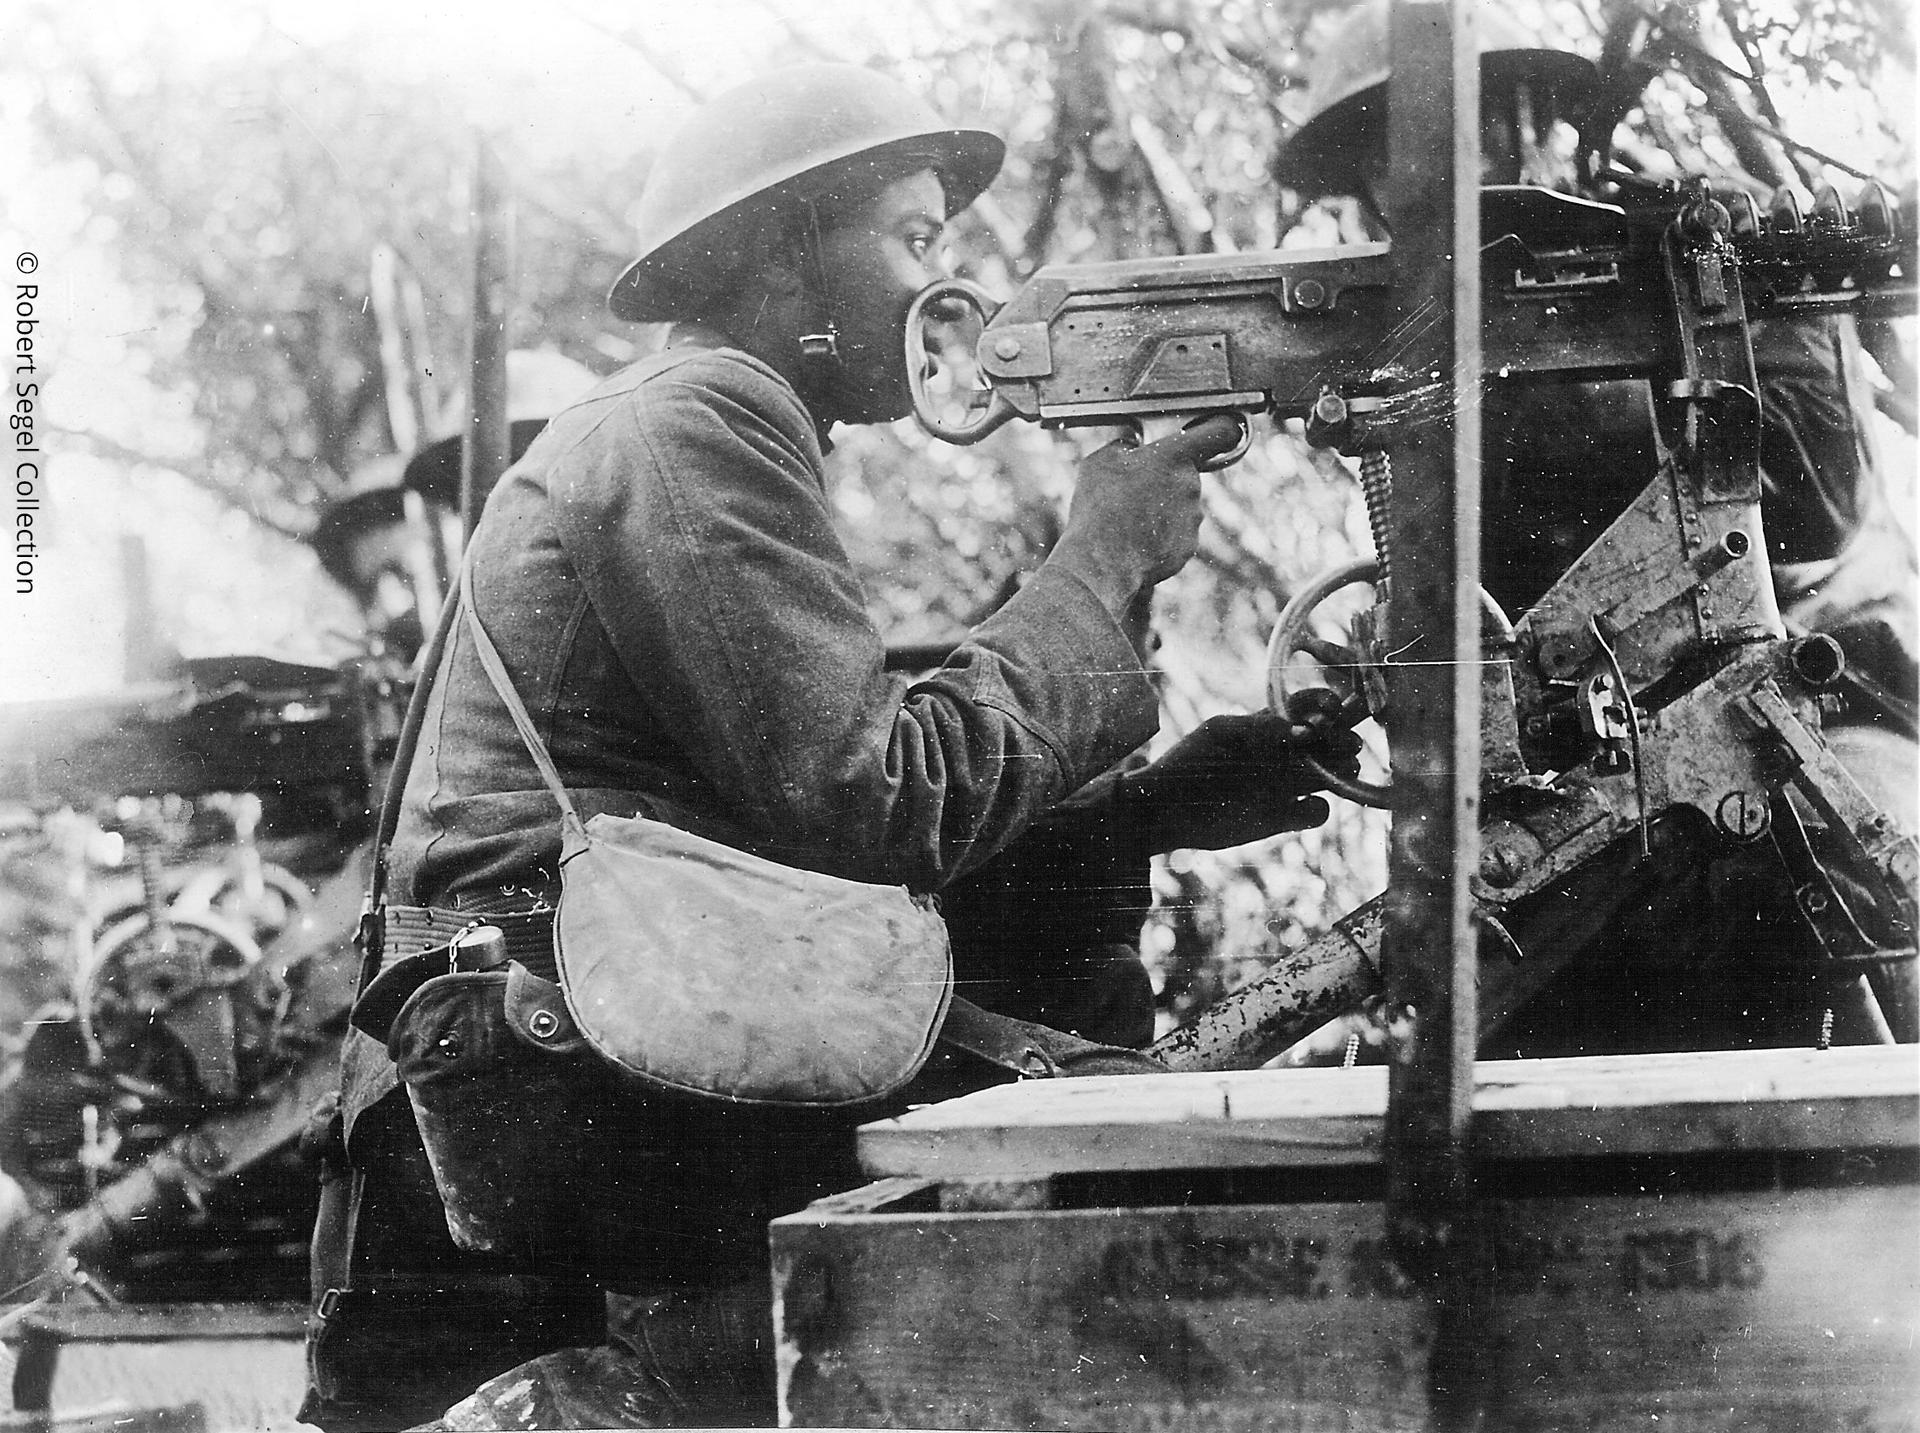 The Hotchkiss was also used by American troops, including these segregated 'Buffalo Soldiers' of the 92nd Division, pictured in July 1918